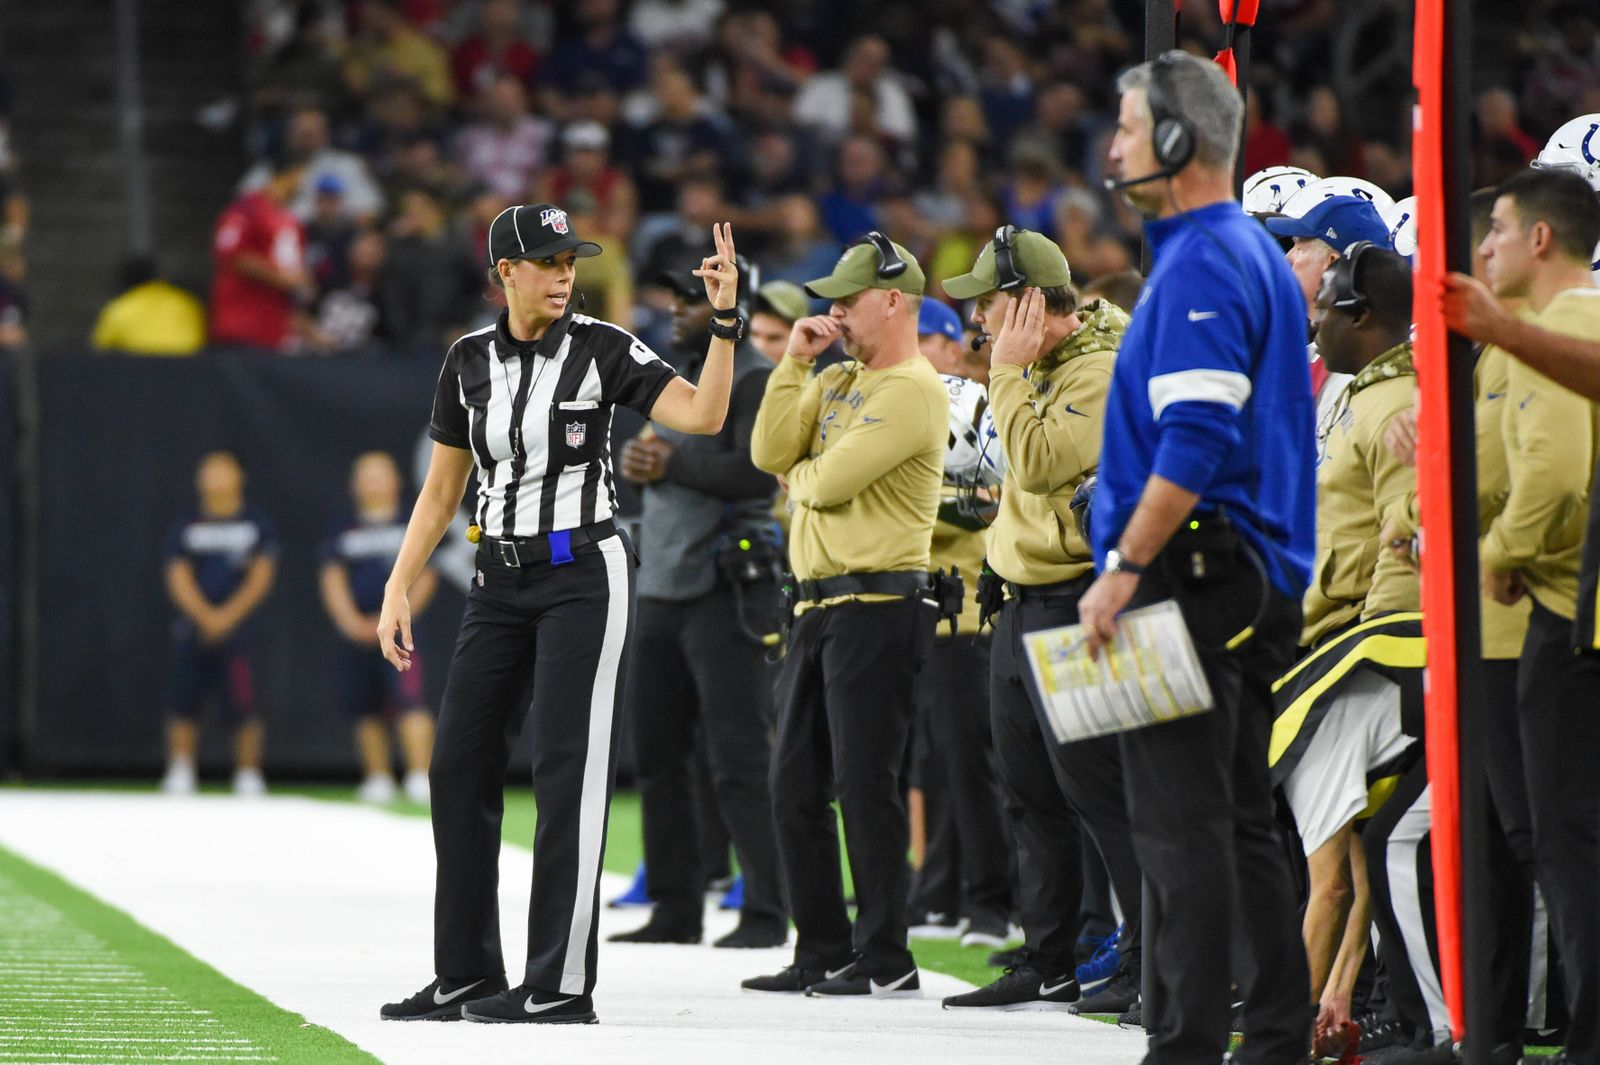 HOUSTON, TX - NOVEMBER 21: Down judge Sarah Thomas (53) talks to the Colts bench during first half action during the fo